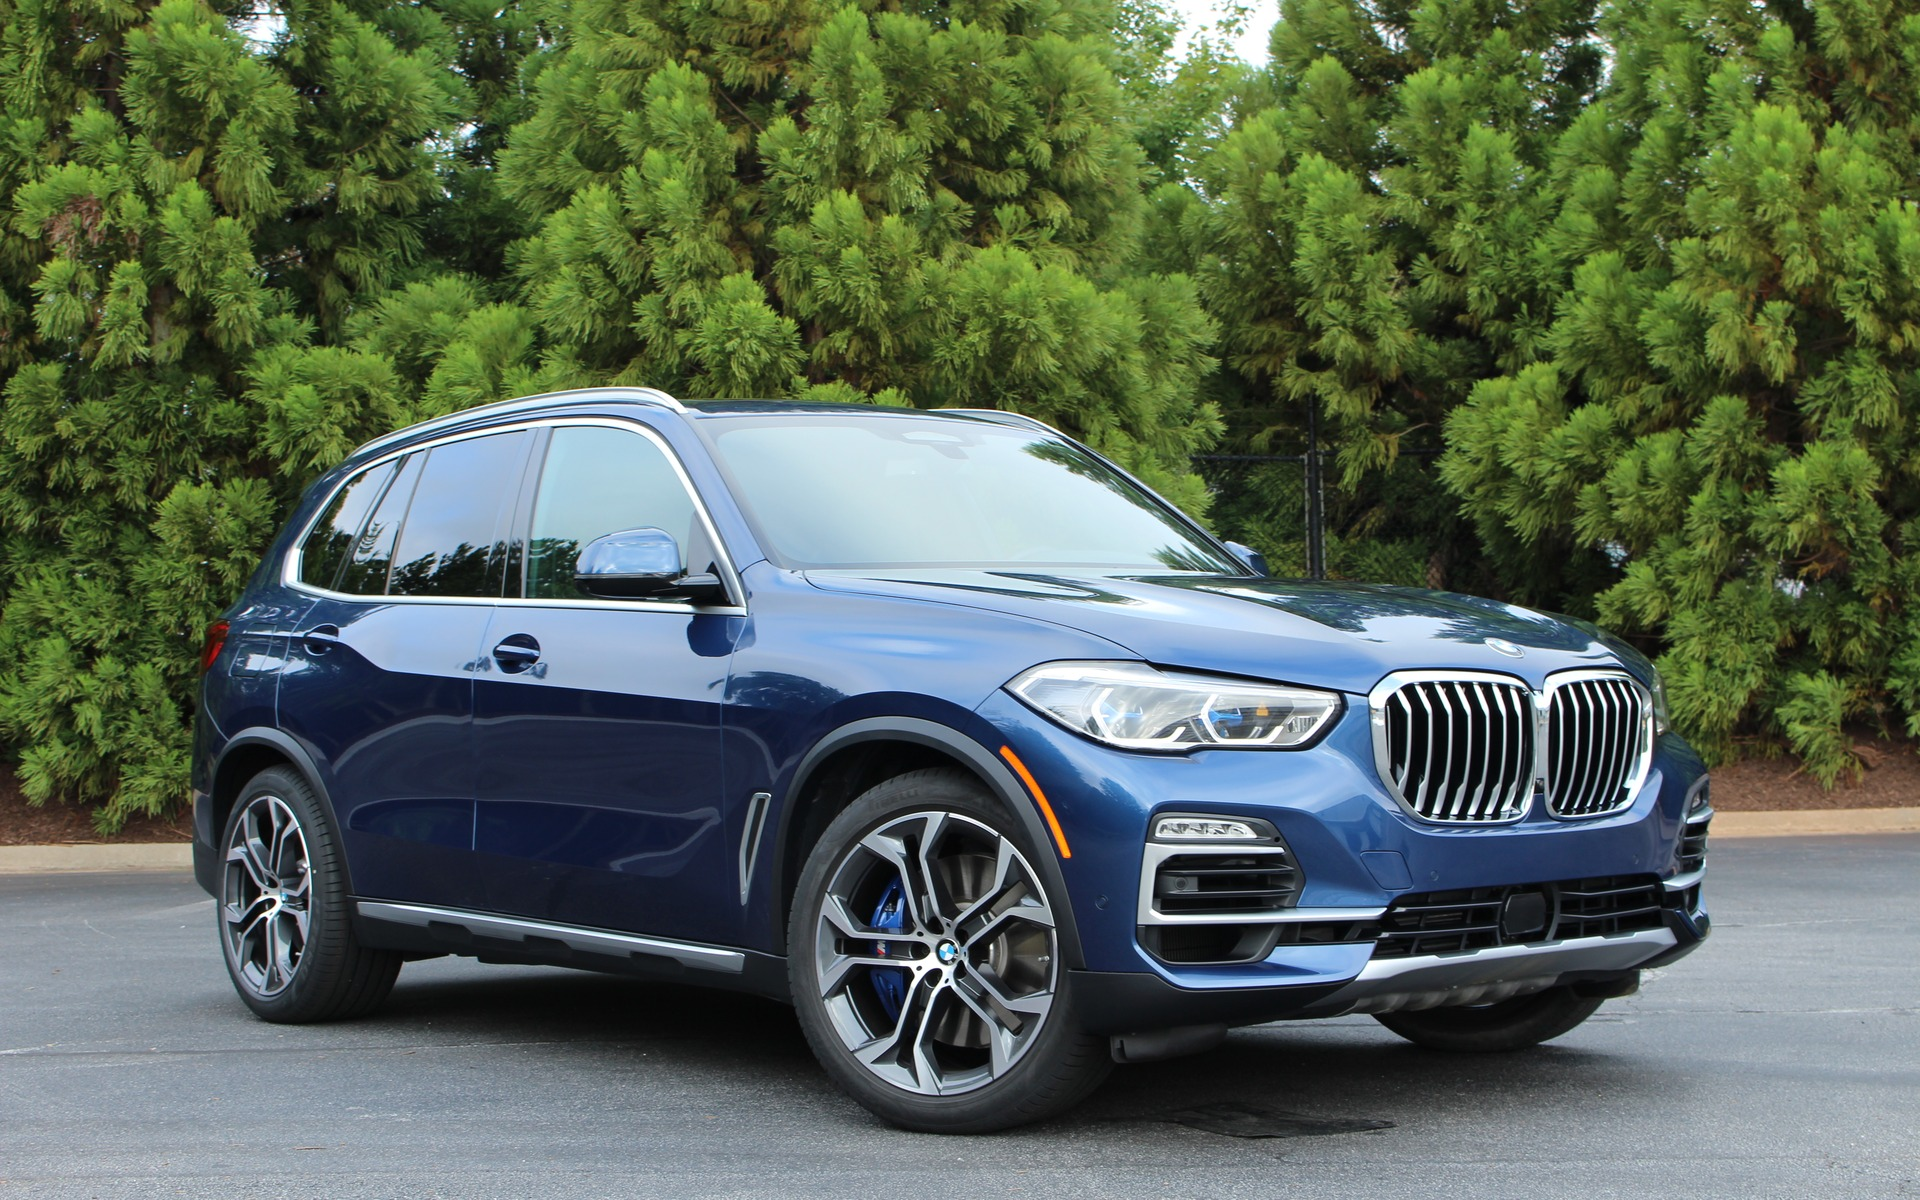 2019 Bmw X5 Technological Evolution The Car Guide